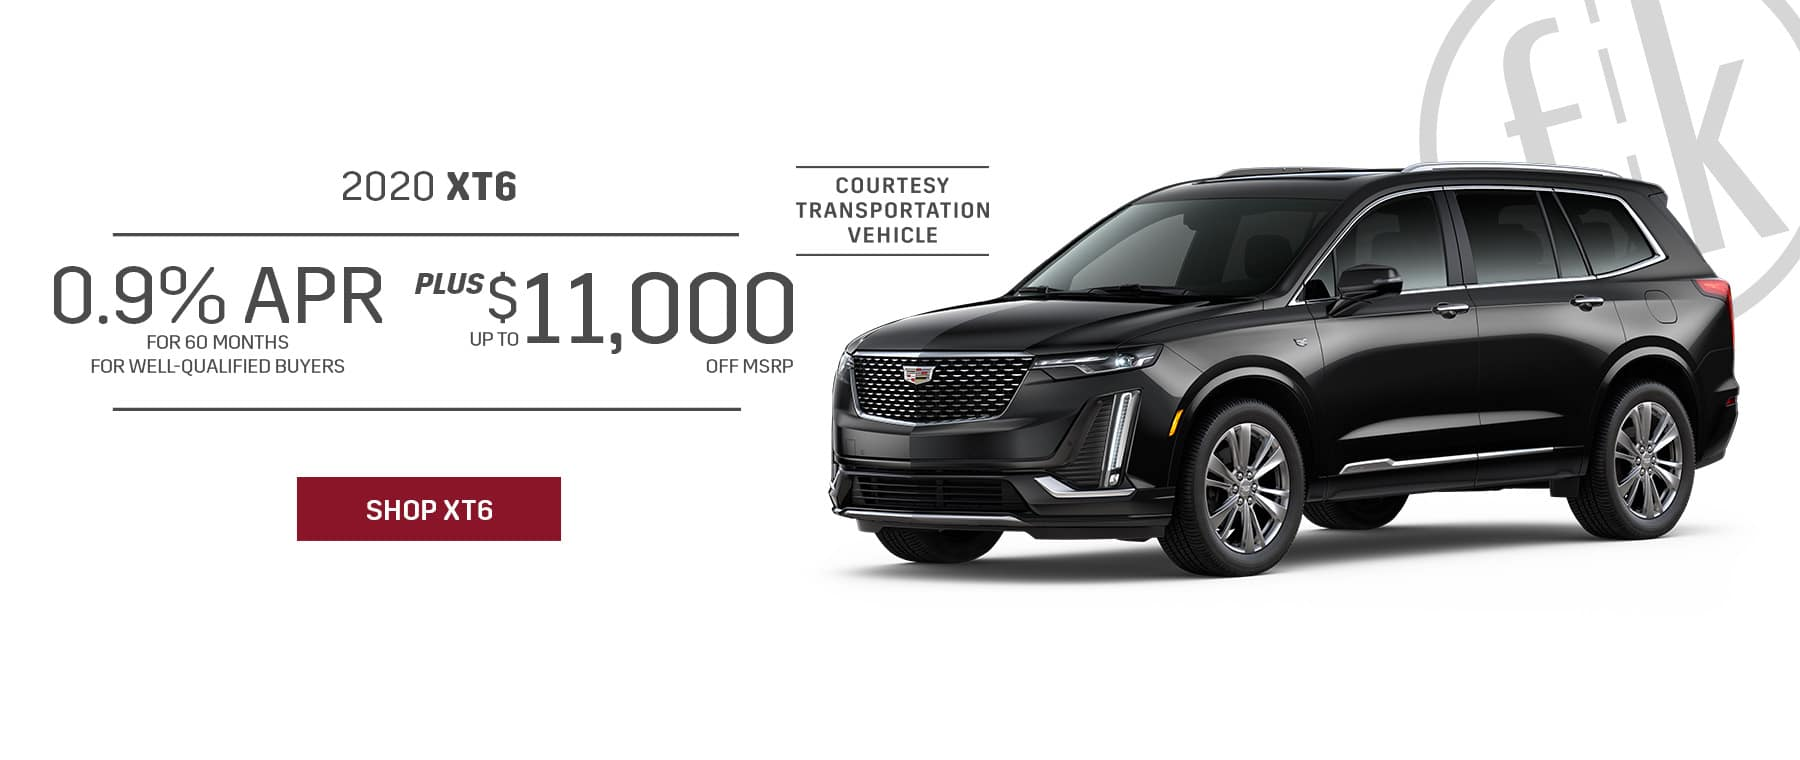 0.9% for 60 mos. PLUS Up To $11,000 Off 2020 XT6 Retired Loaners